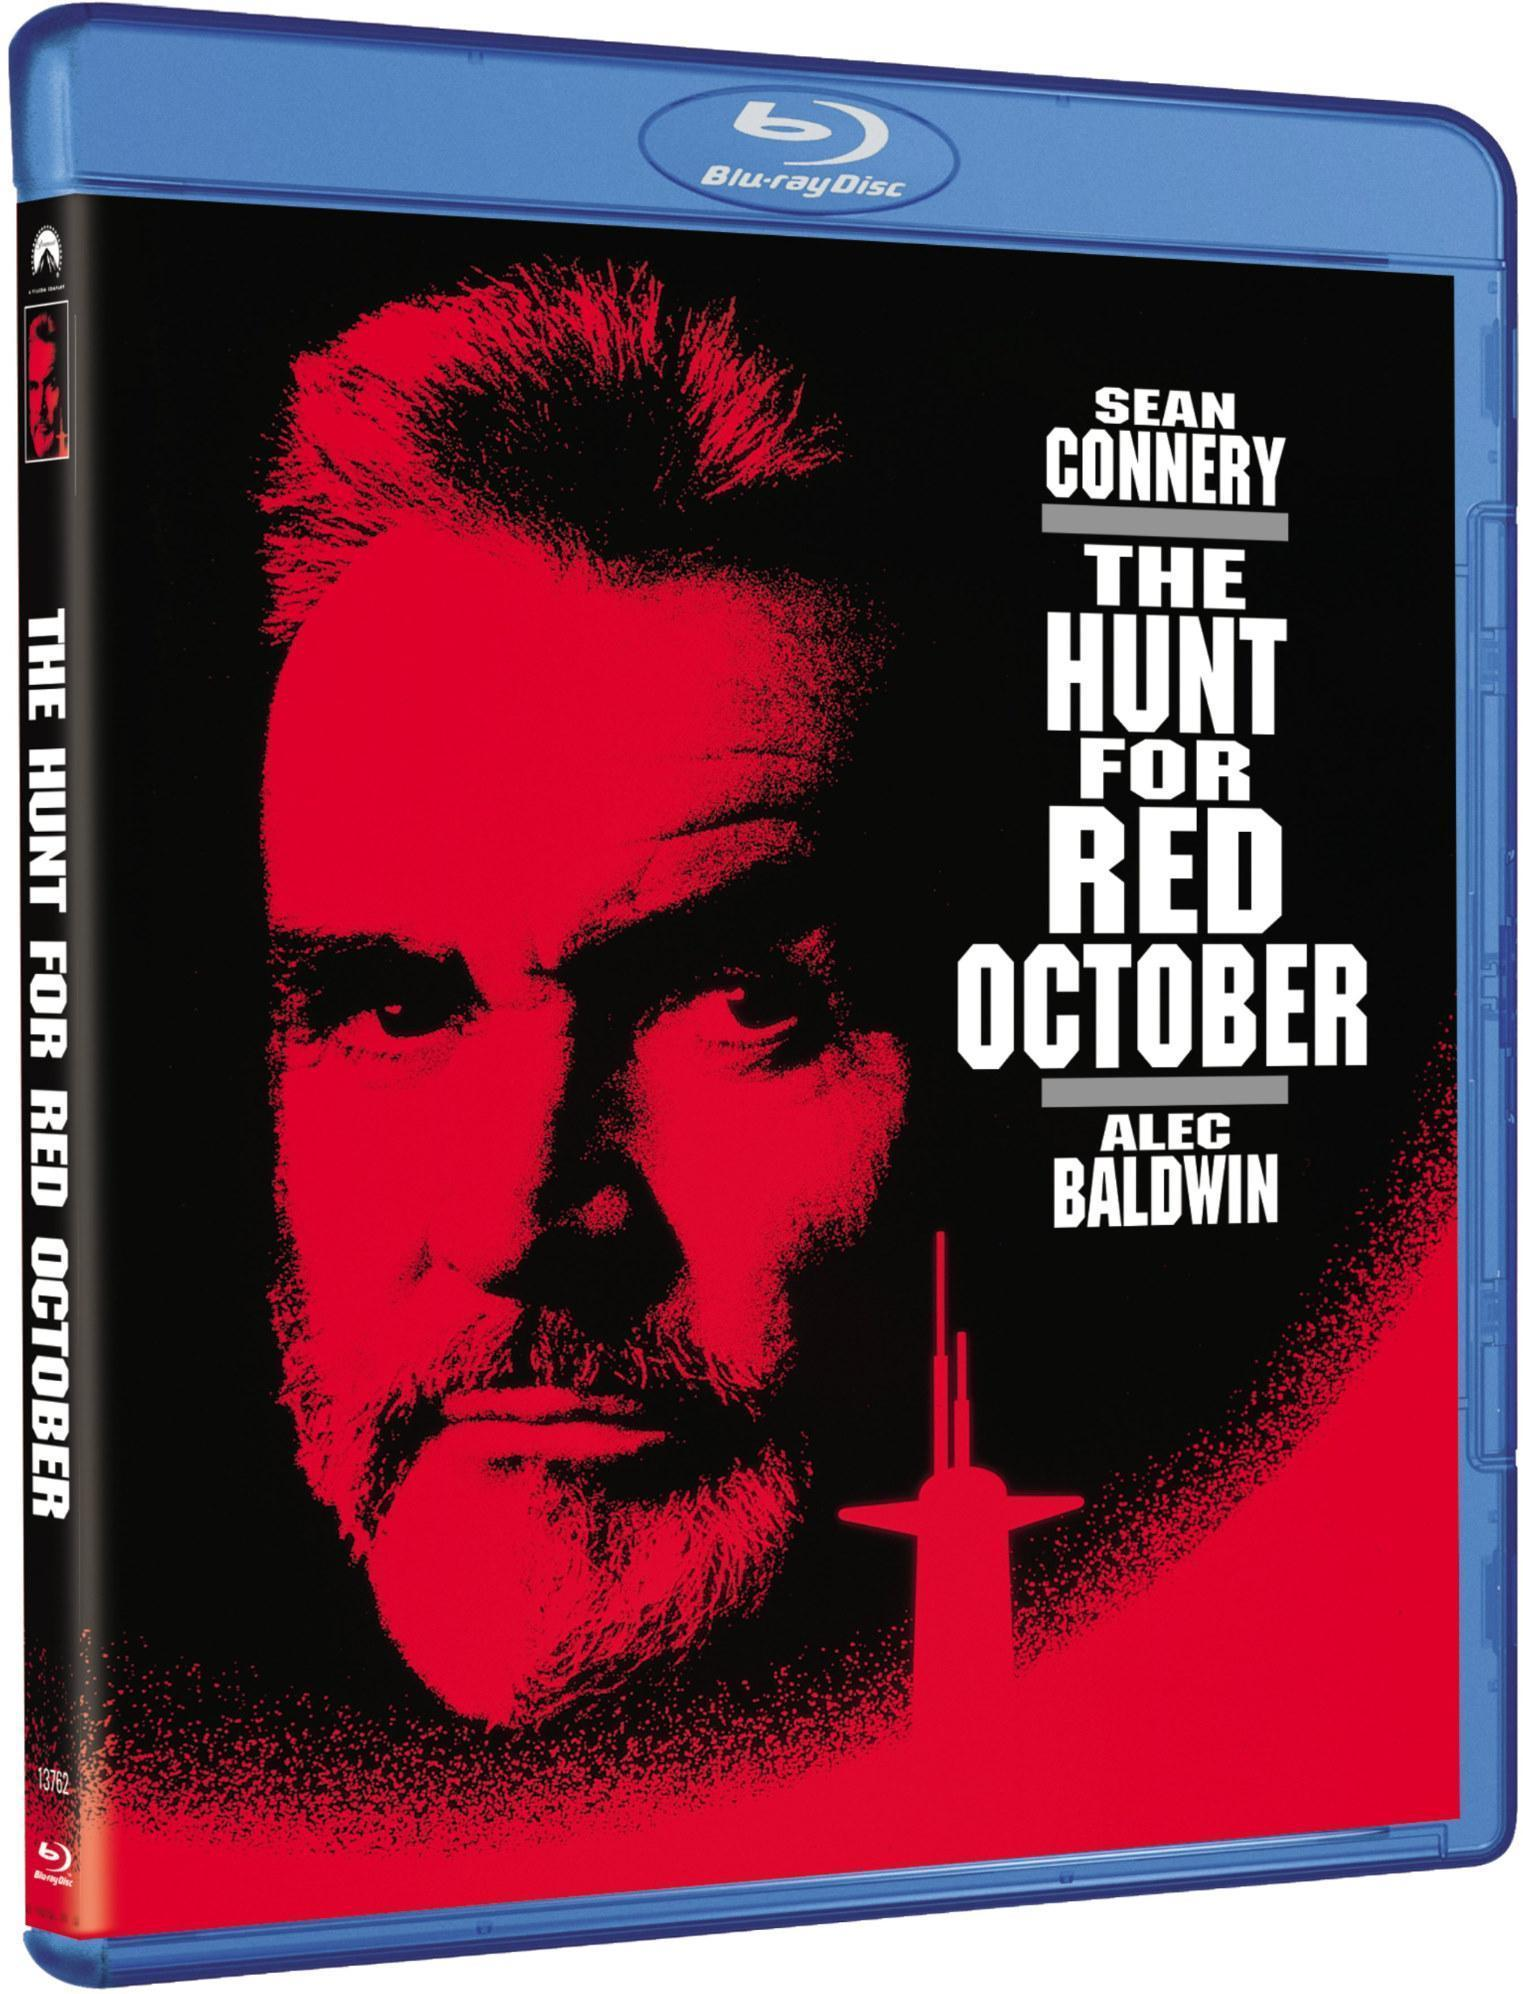 a review of the novel the hunt for red october by tom clancy 0 reviews  an original collector's grade hardcover book for your tom clancy  collection somewhere  the hunt for red october is a novel by tom clancy.